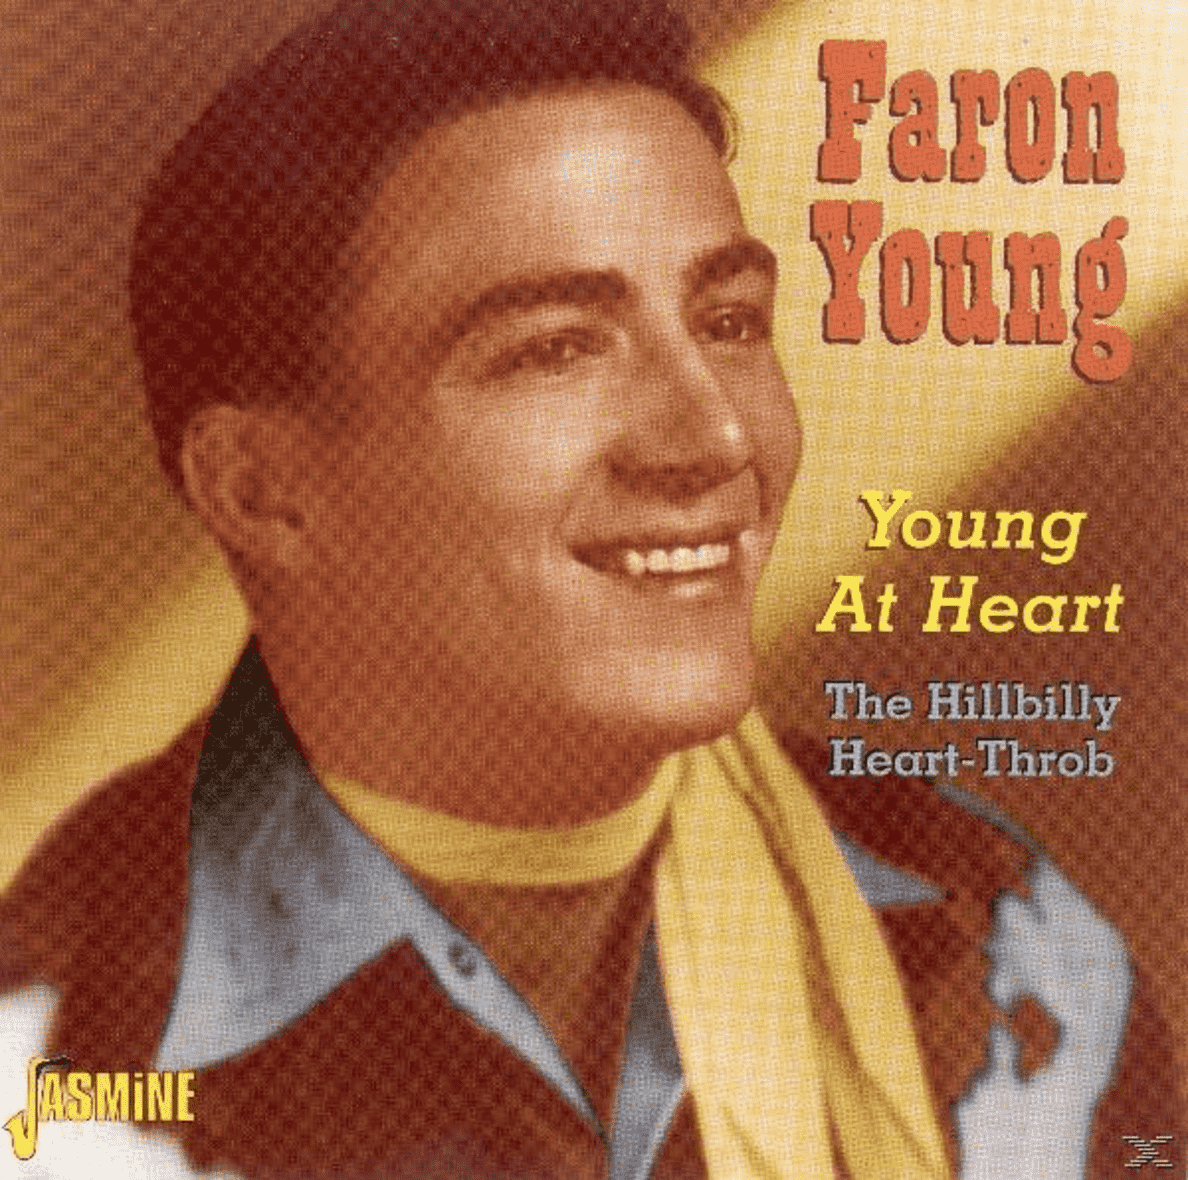 Young At Heart-The Hillbilly Heart-Throb Faron Young auf CD